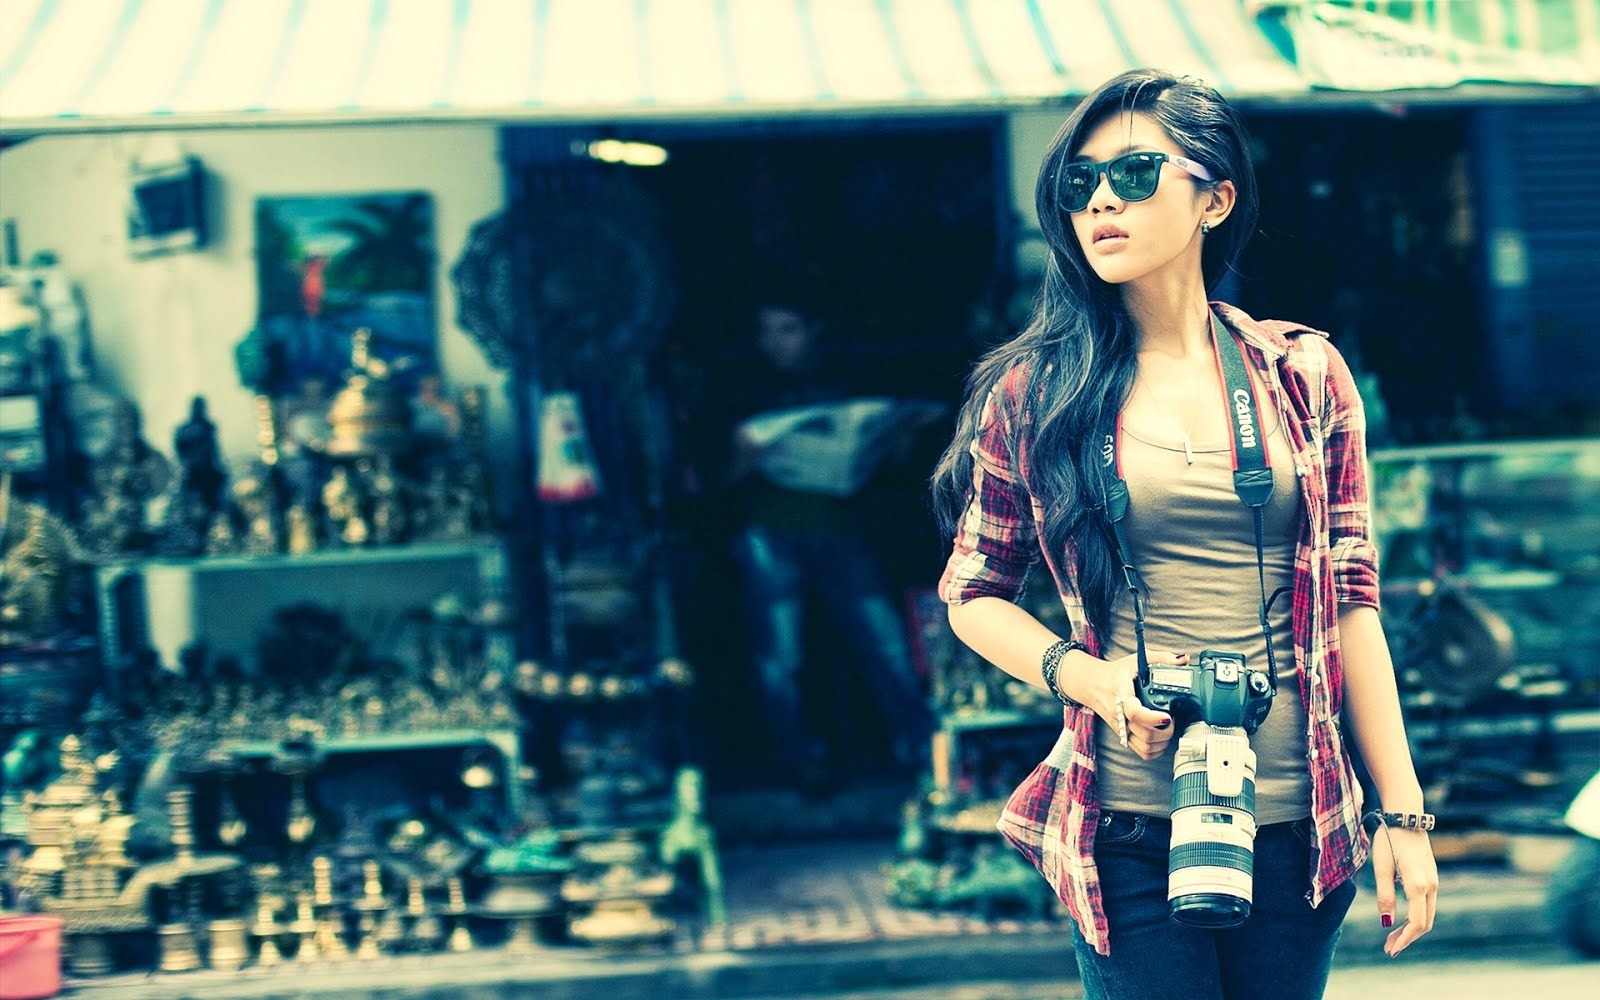 Trendiest Photography in DSLR Style